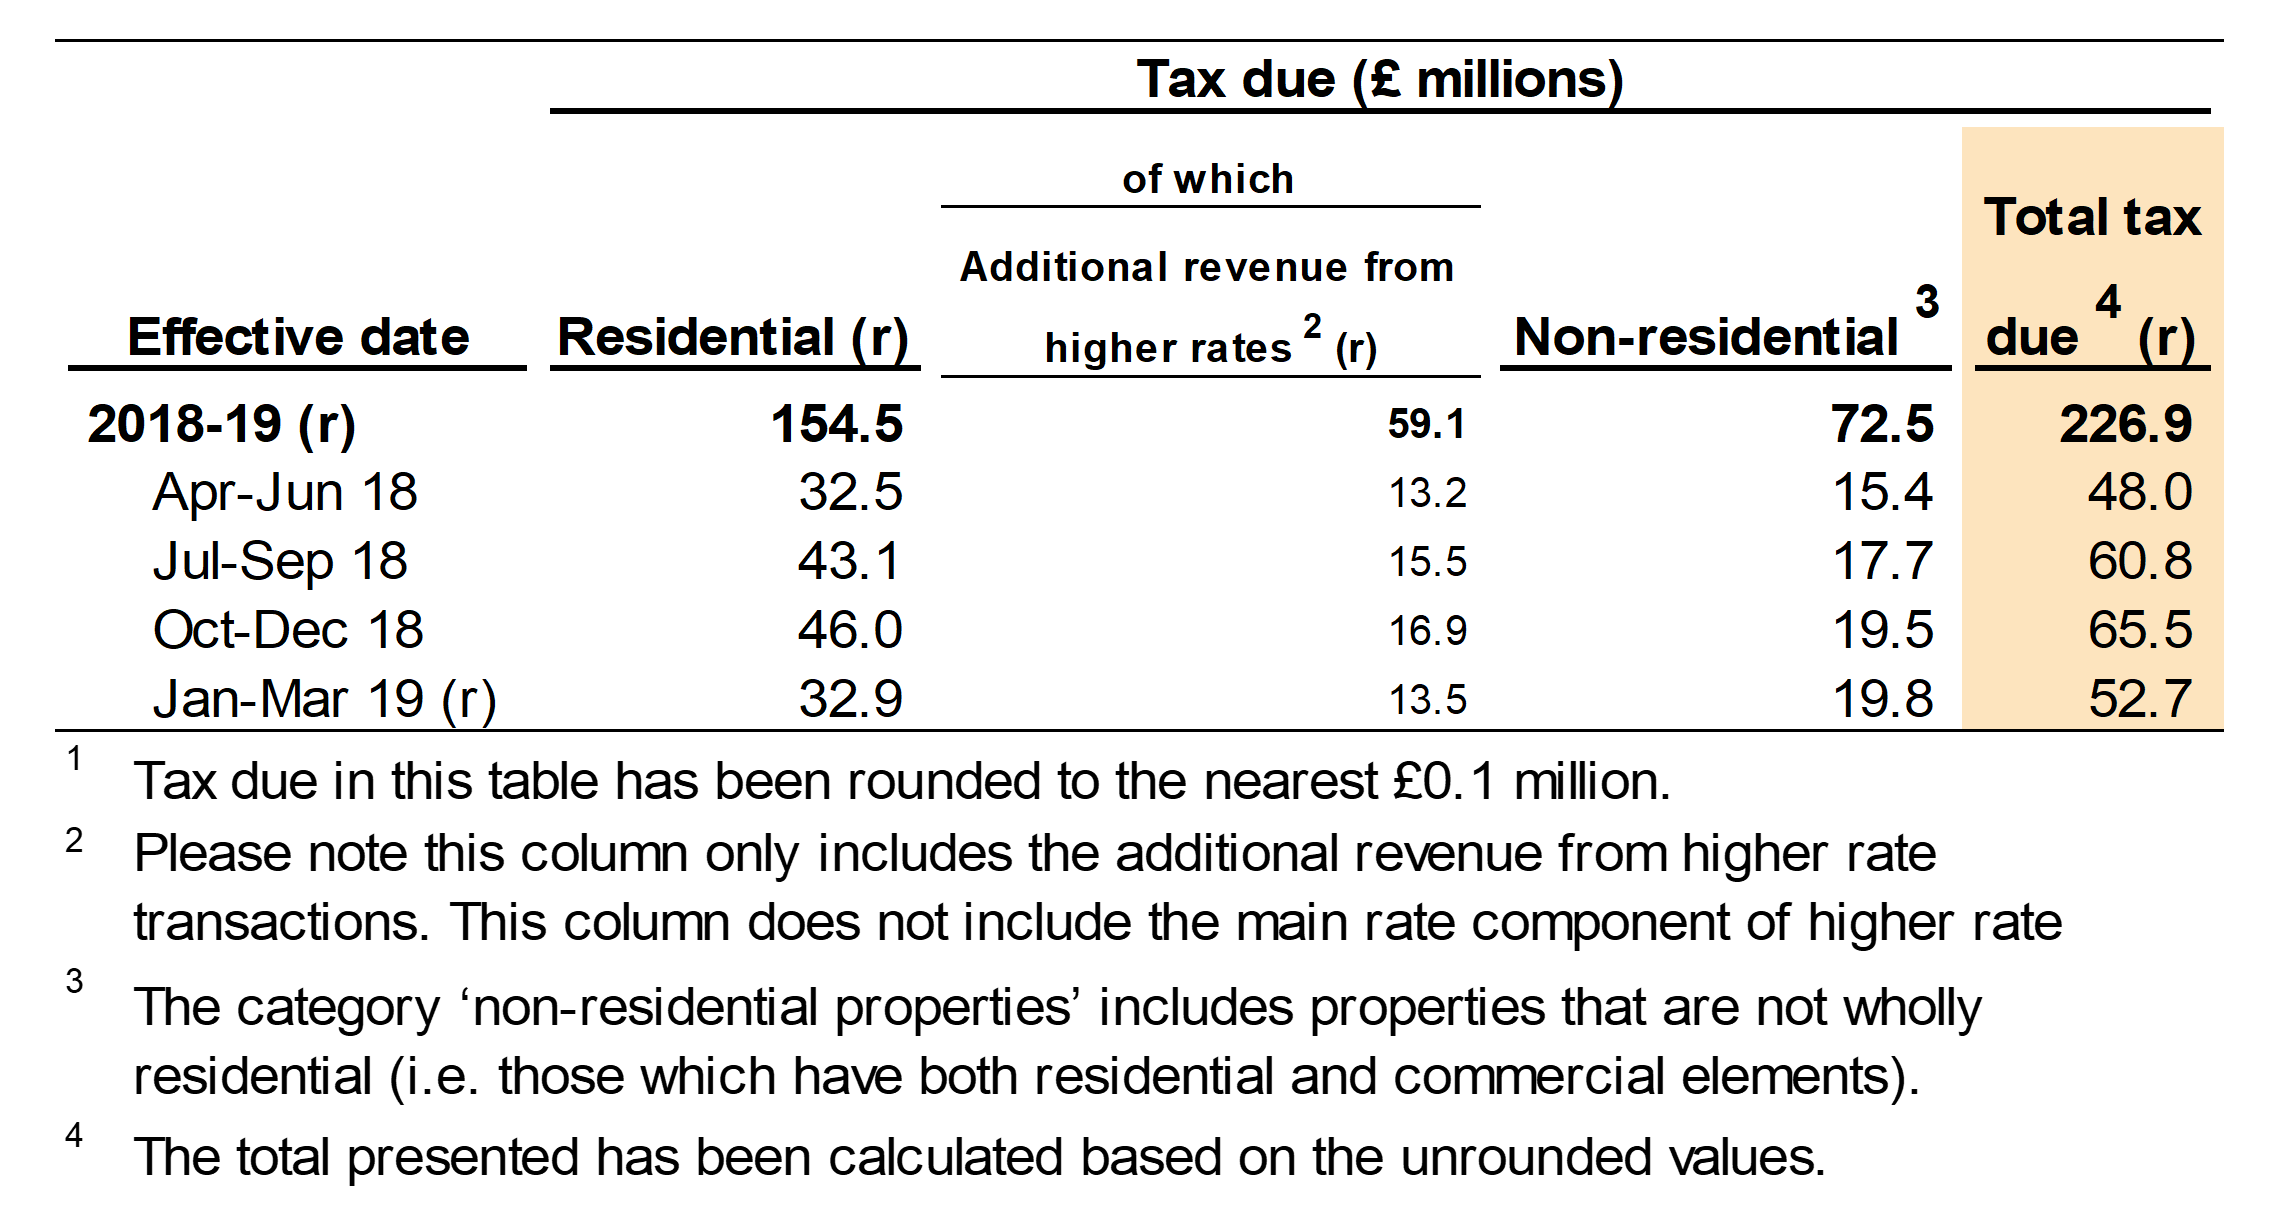 Figure 2.2 shows the tax due on reported notifiable transactions, by the quarter and year in which the transactions were effective. Figure 2.2 also shows a breakdown for residential and non-residential transactions.